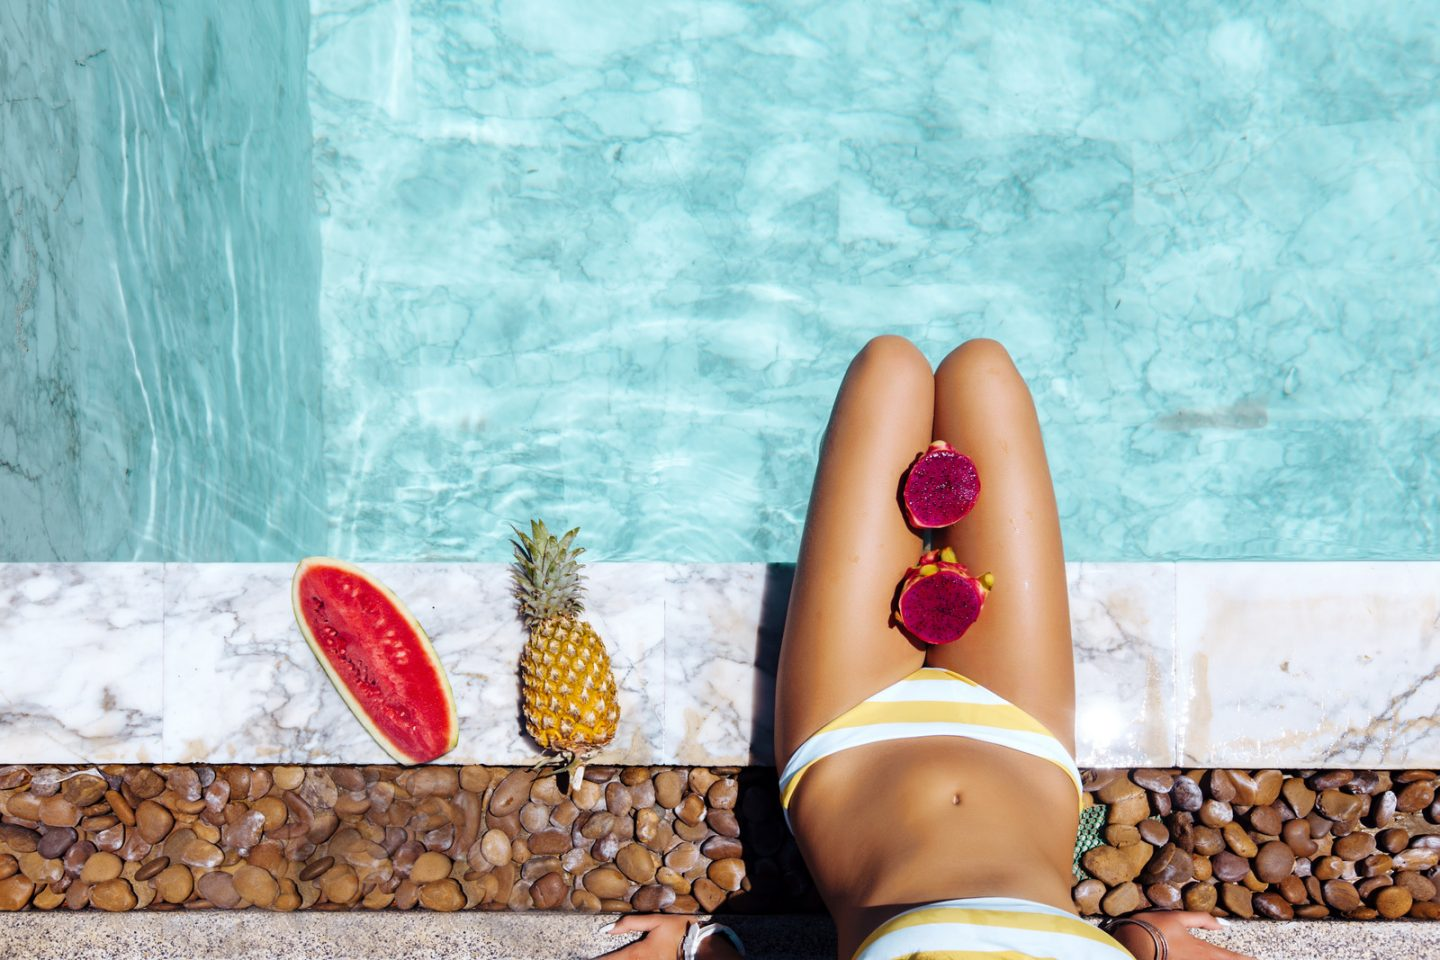 Girl sitting by pool and eating watermelon, POV photo of legs closeup. Tropical fruit diet. Summer holiday idyllic concept top view.